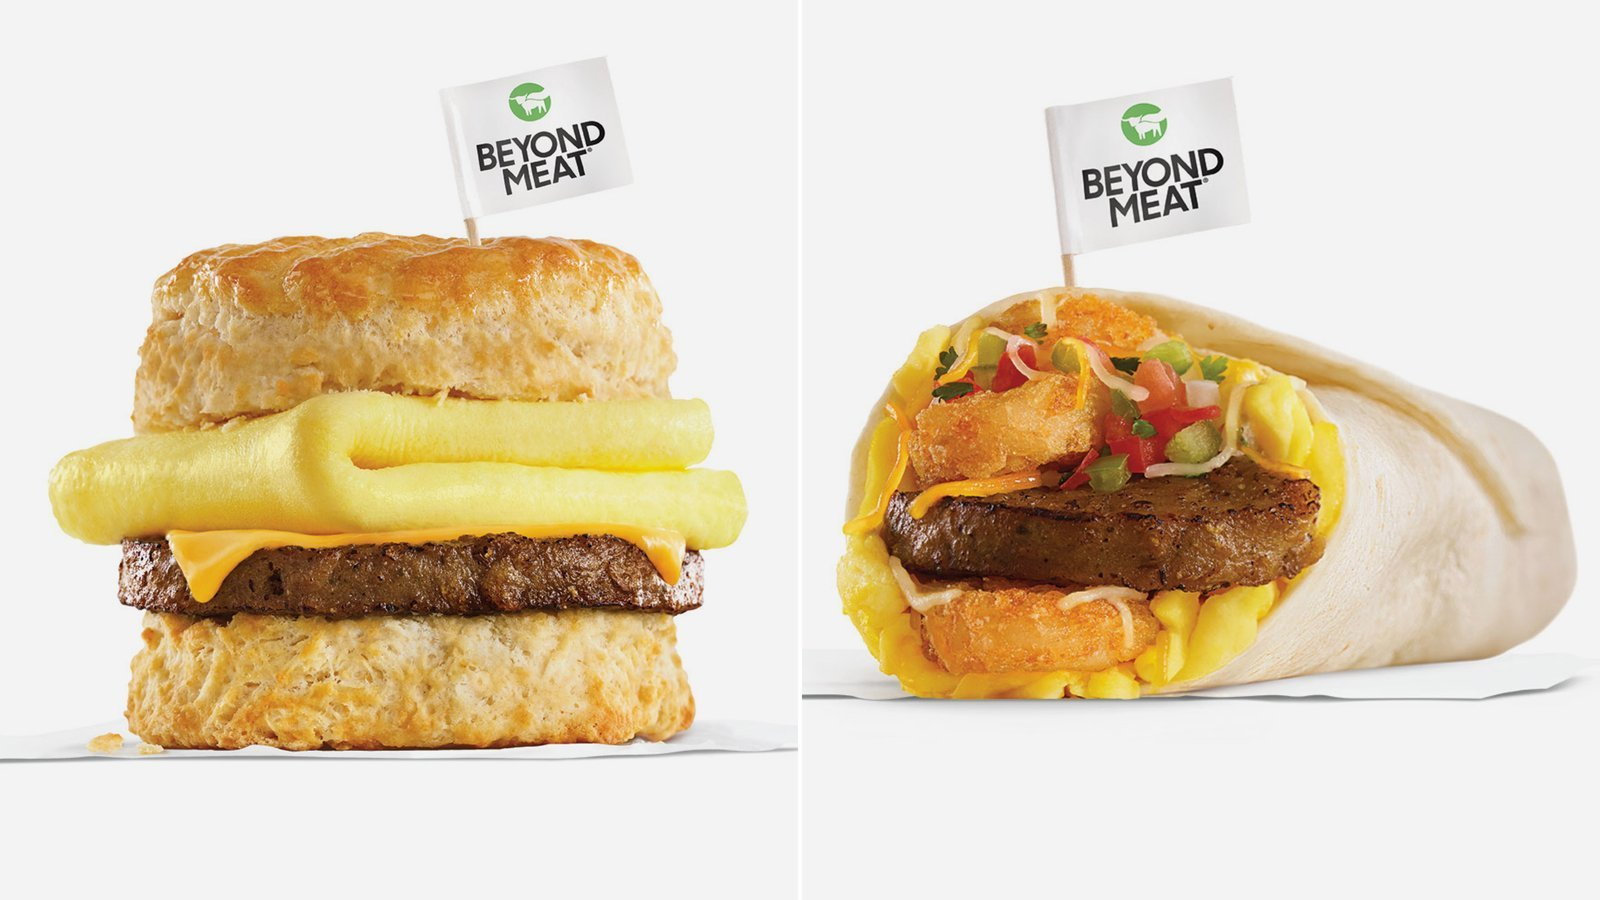 Carl's Jr. is serving a Beyond Sausage burrito, made with Beyond's meatless sausage, egg, cheese and other ingredients, as well as a Beyond Sausage egg and cheese biscuit. (Credit: Carl's Jr.)